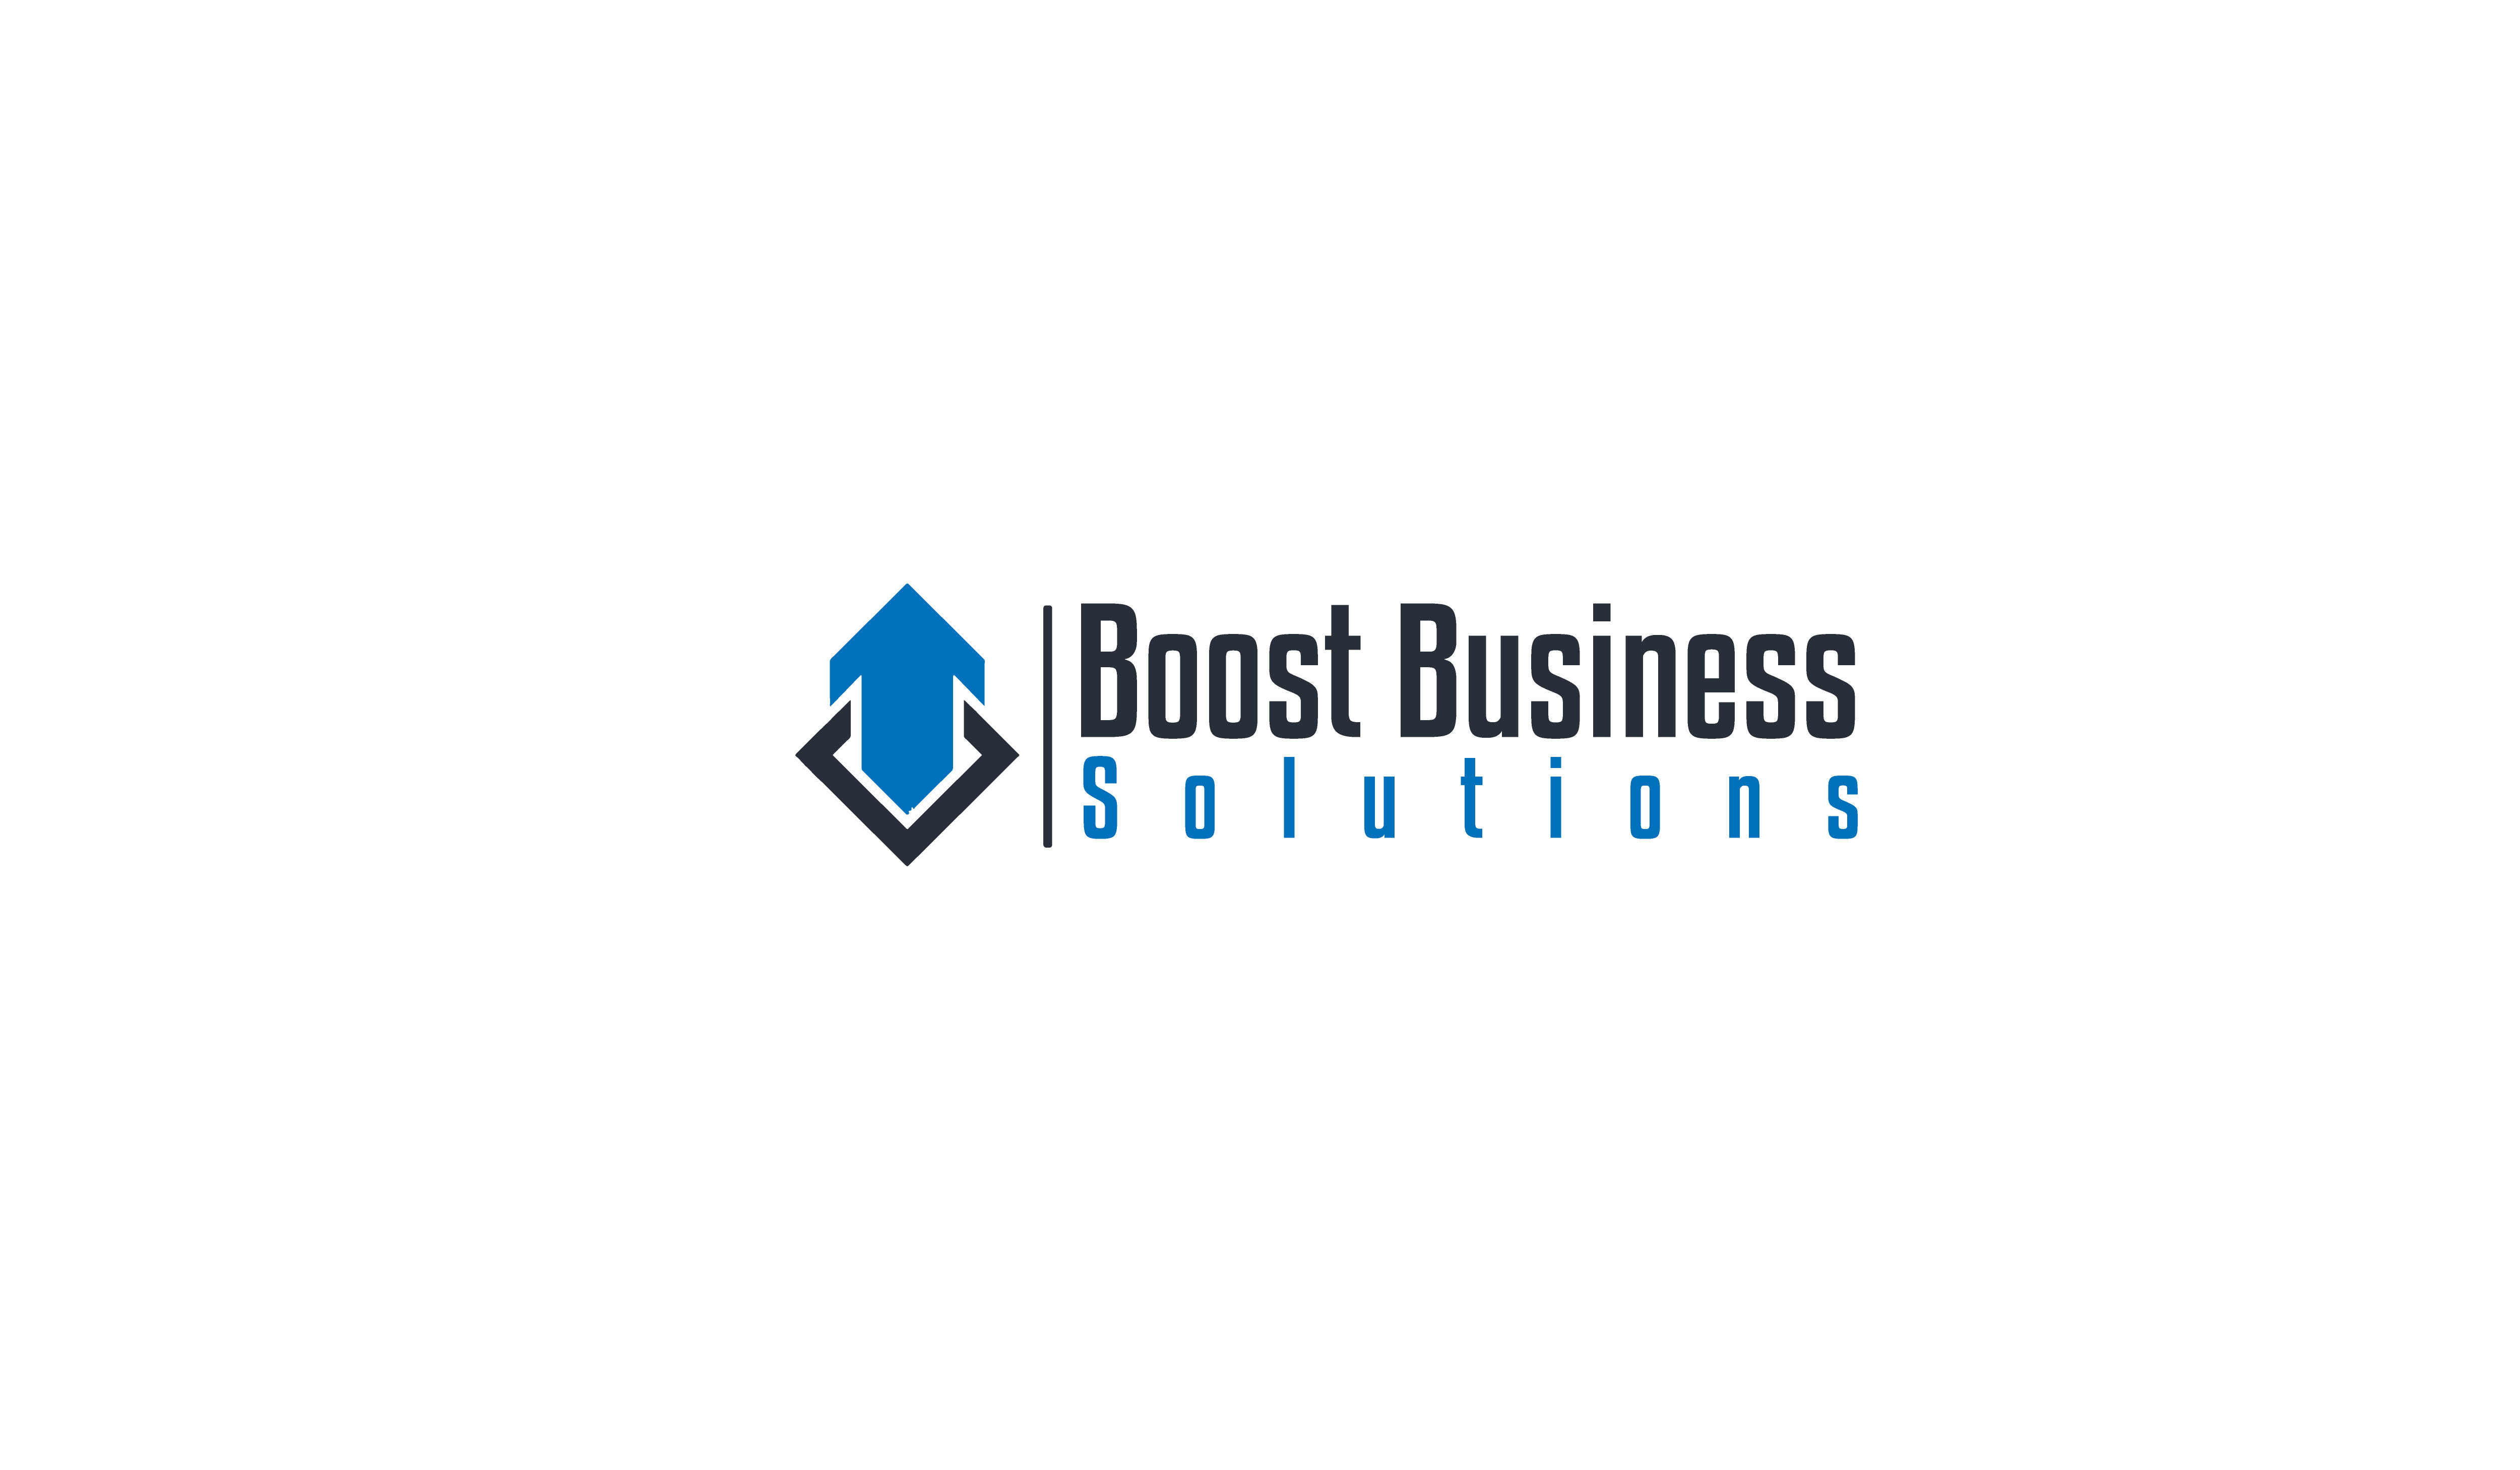 Boost Business Solutions, LLC image 1